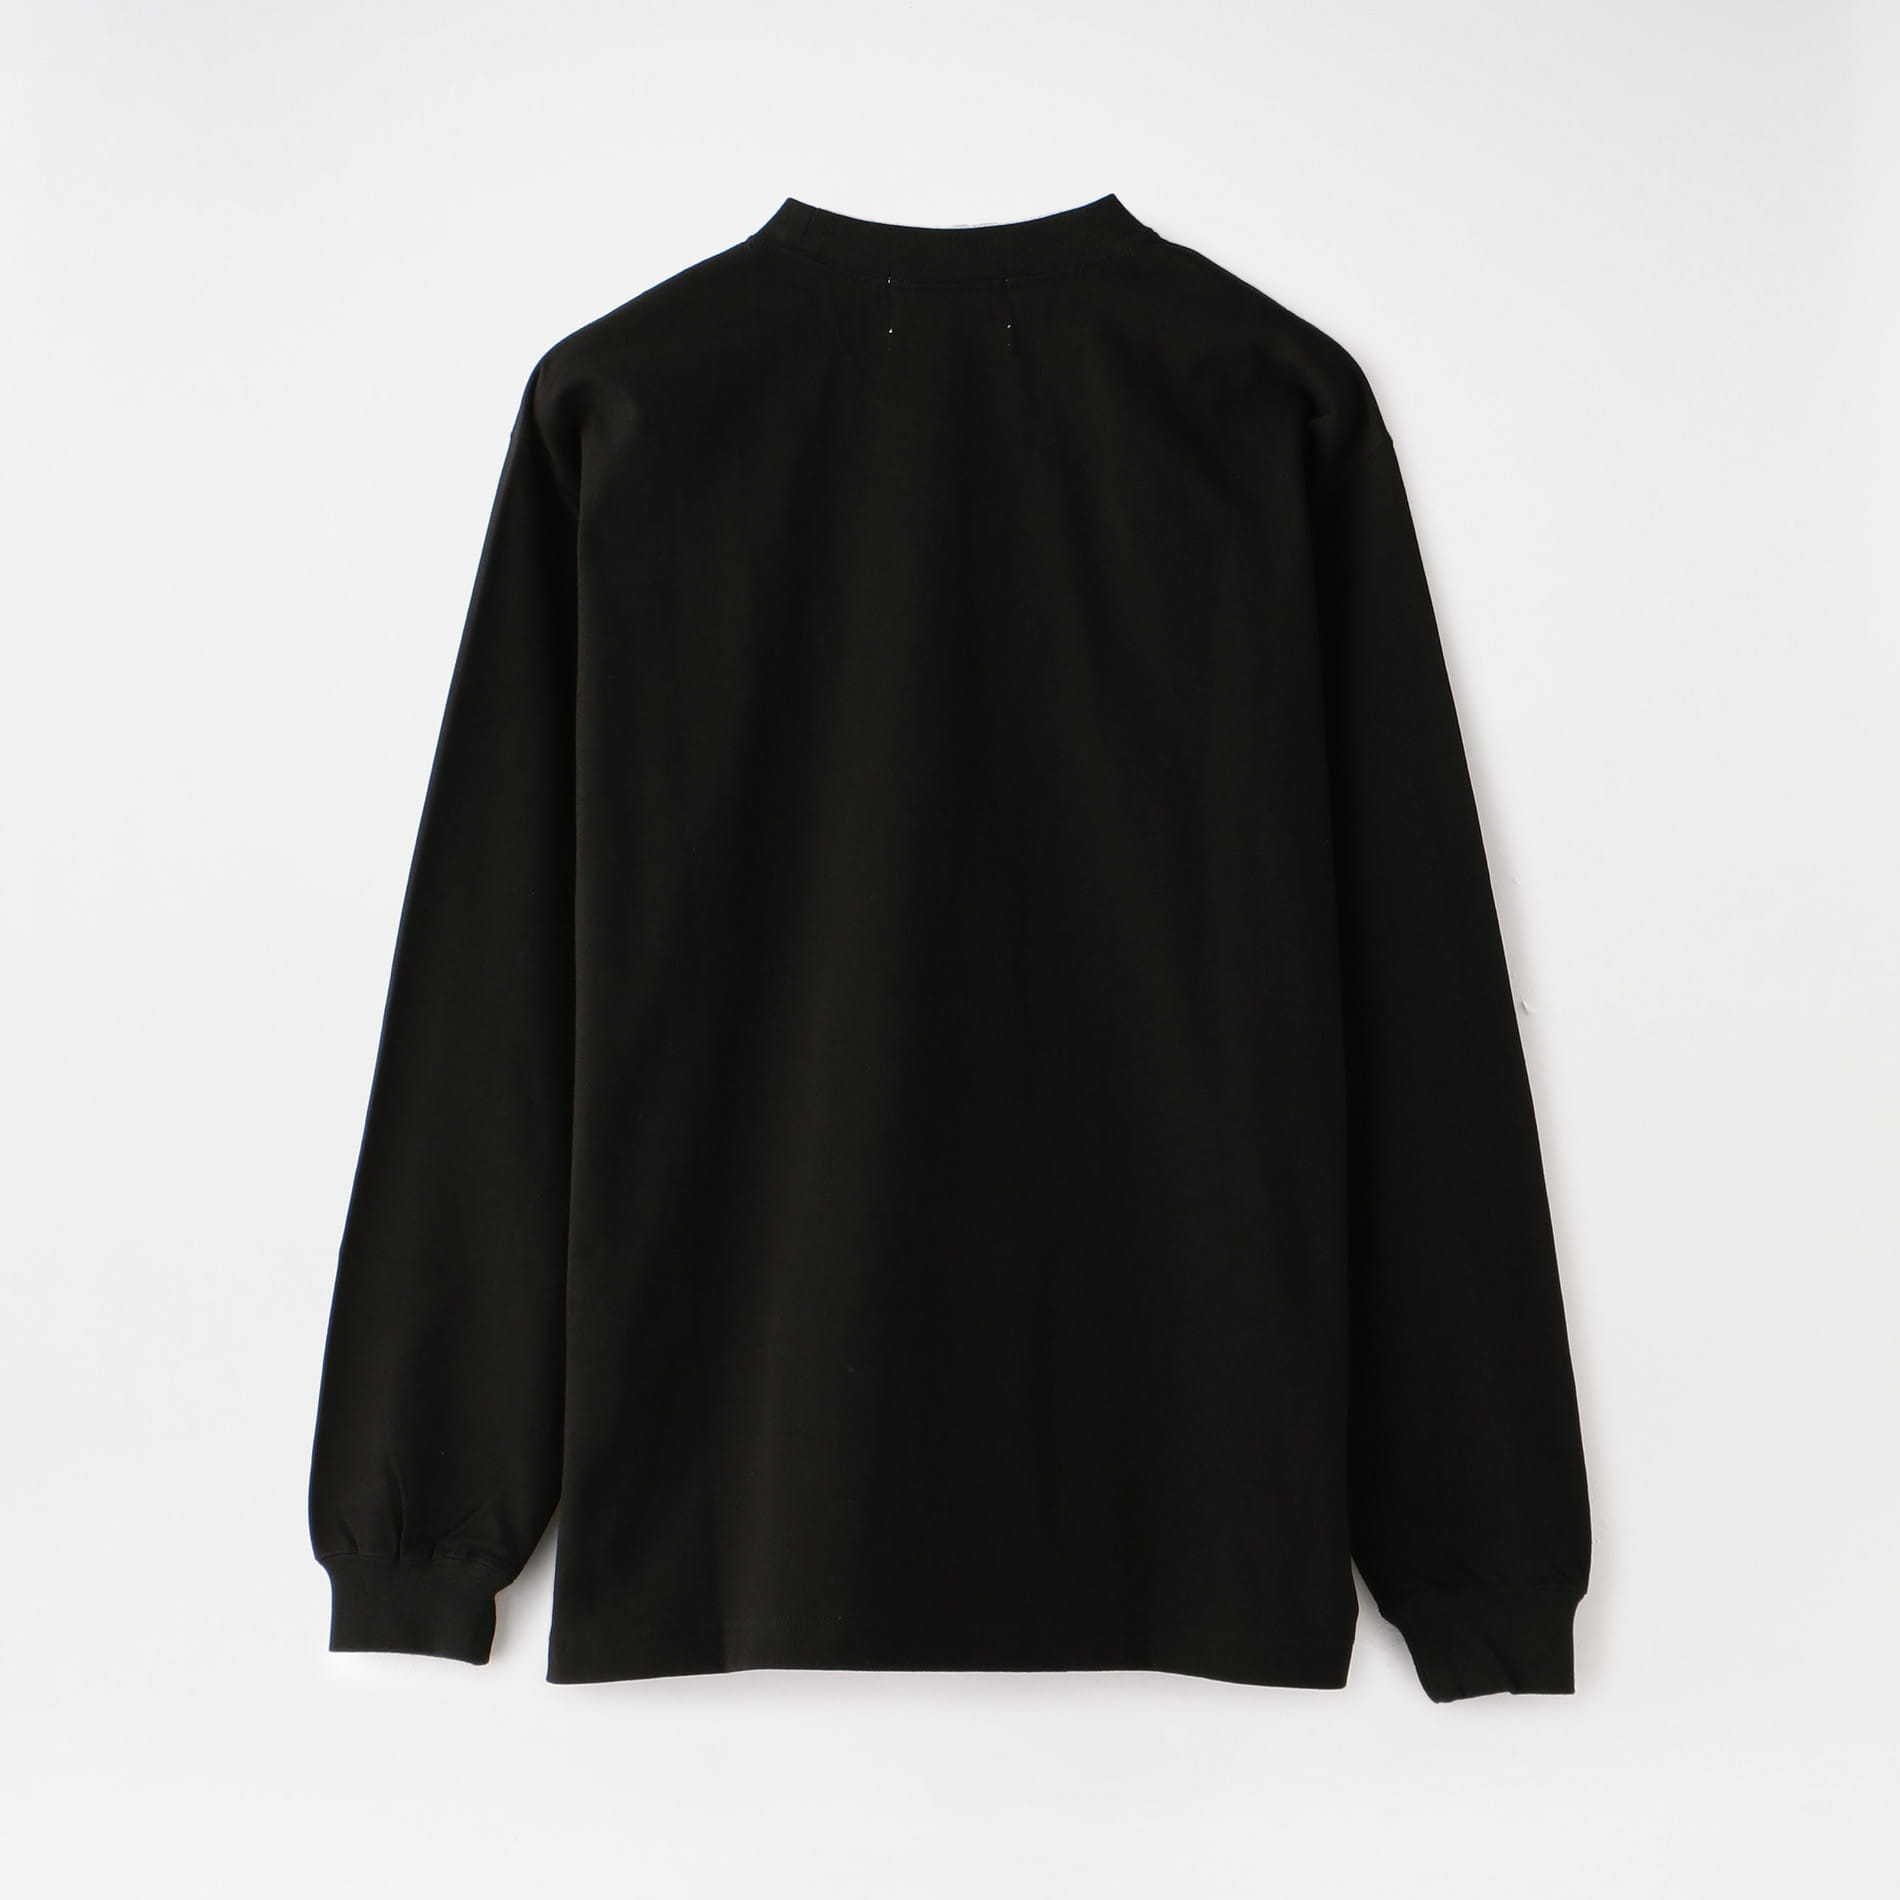 【EMOTIONALLY UNAVAILABLE】MEN COMPLETELY HATED L/S TEE FW20-EU-010